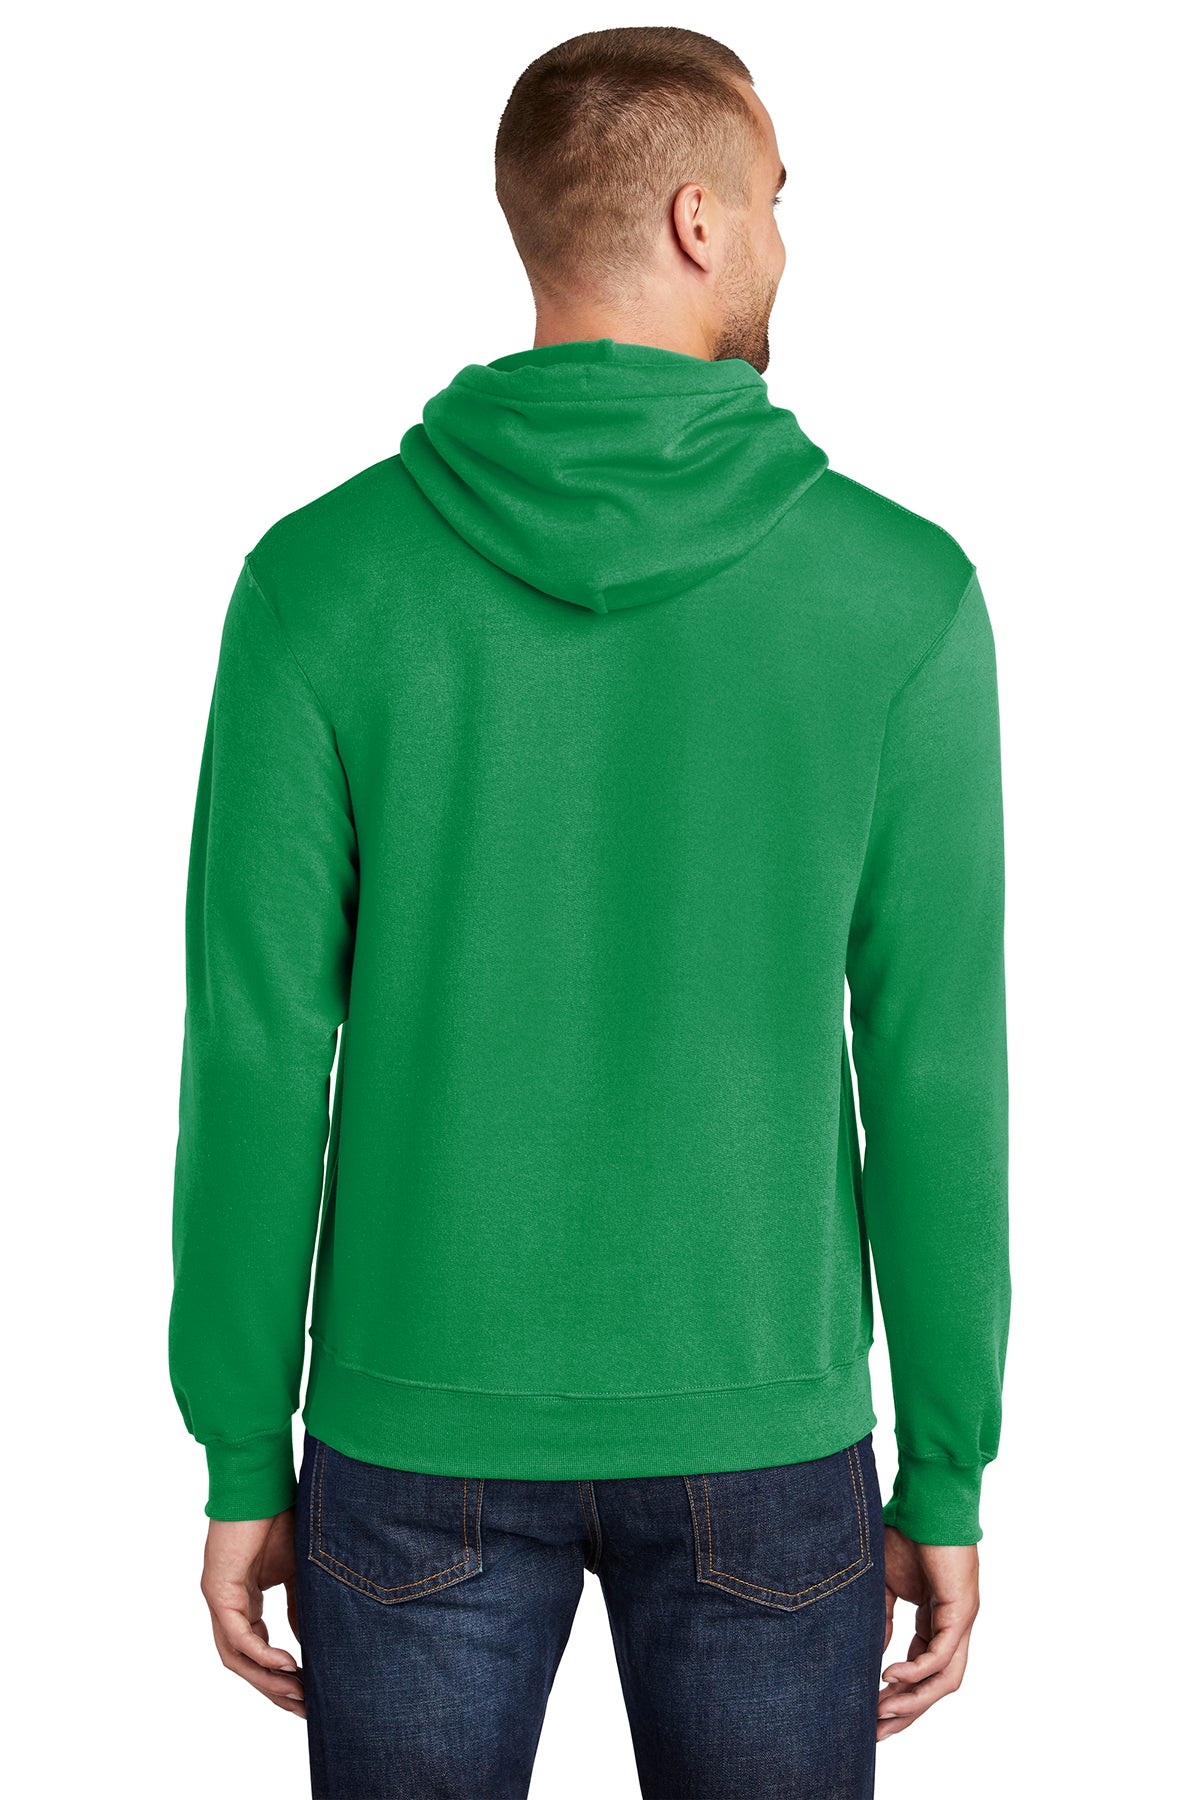 Port & Company PC78H Mens Core Fleece Hooded Sweatshirt Hoodie Kelly Green Back